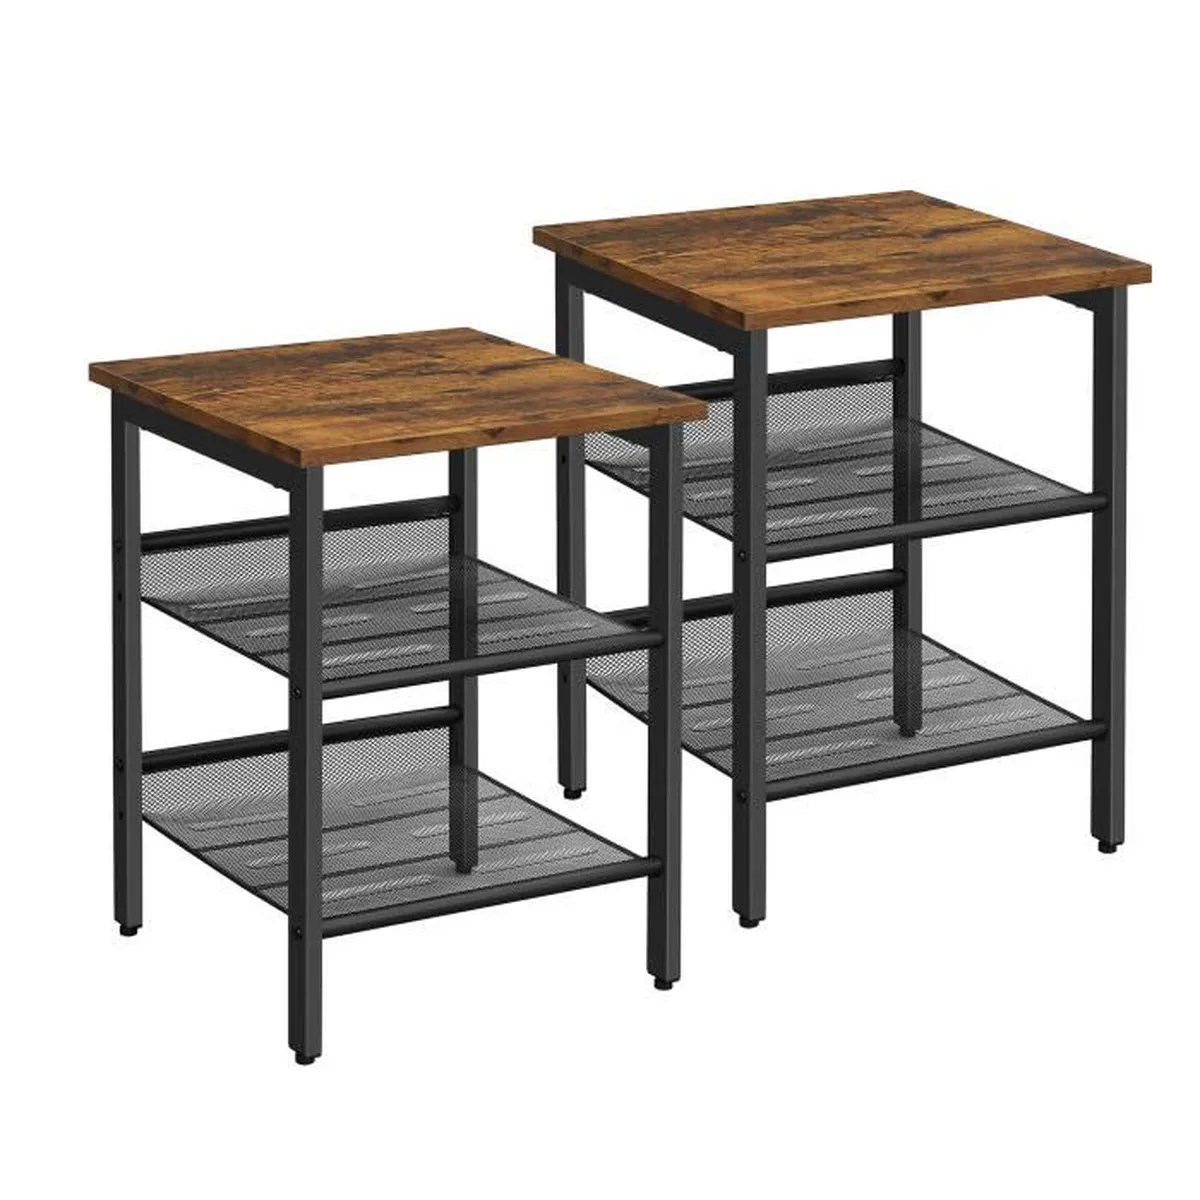 Table De Chevet Industriel Vasagle Lot De 2 Tables De Chevet Style Industriel Tables D Appint